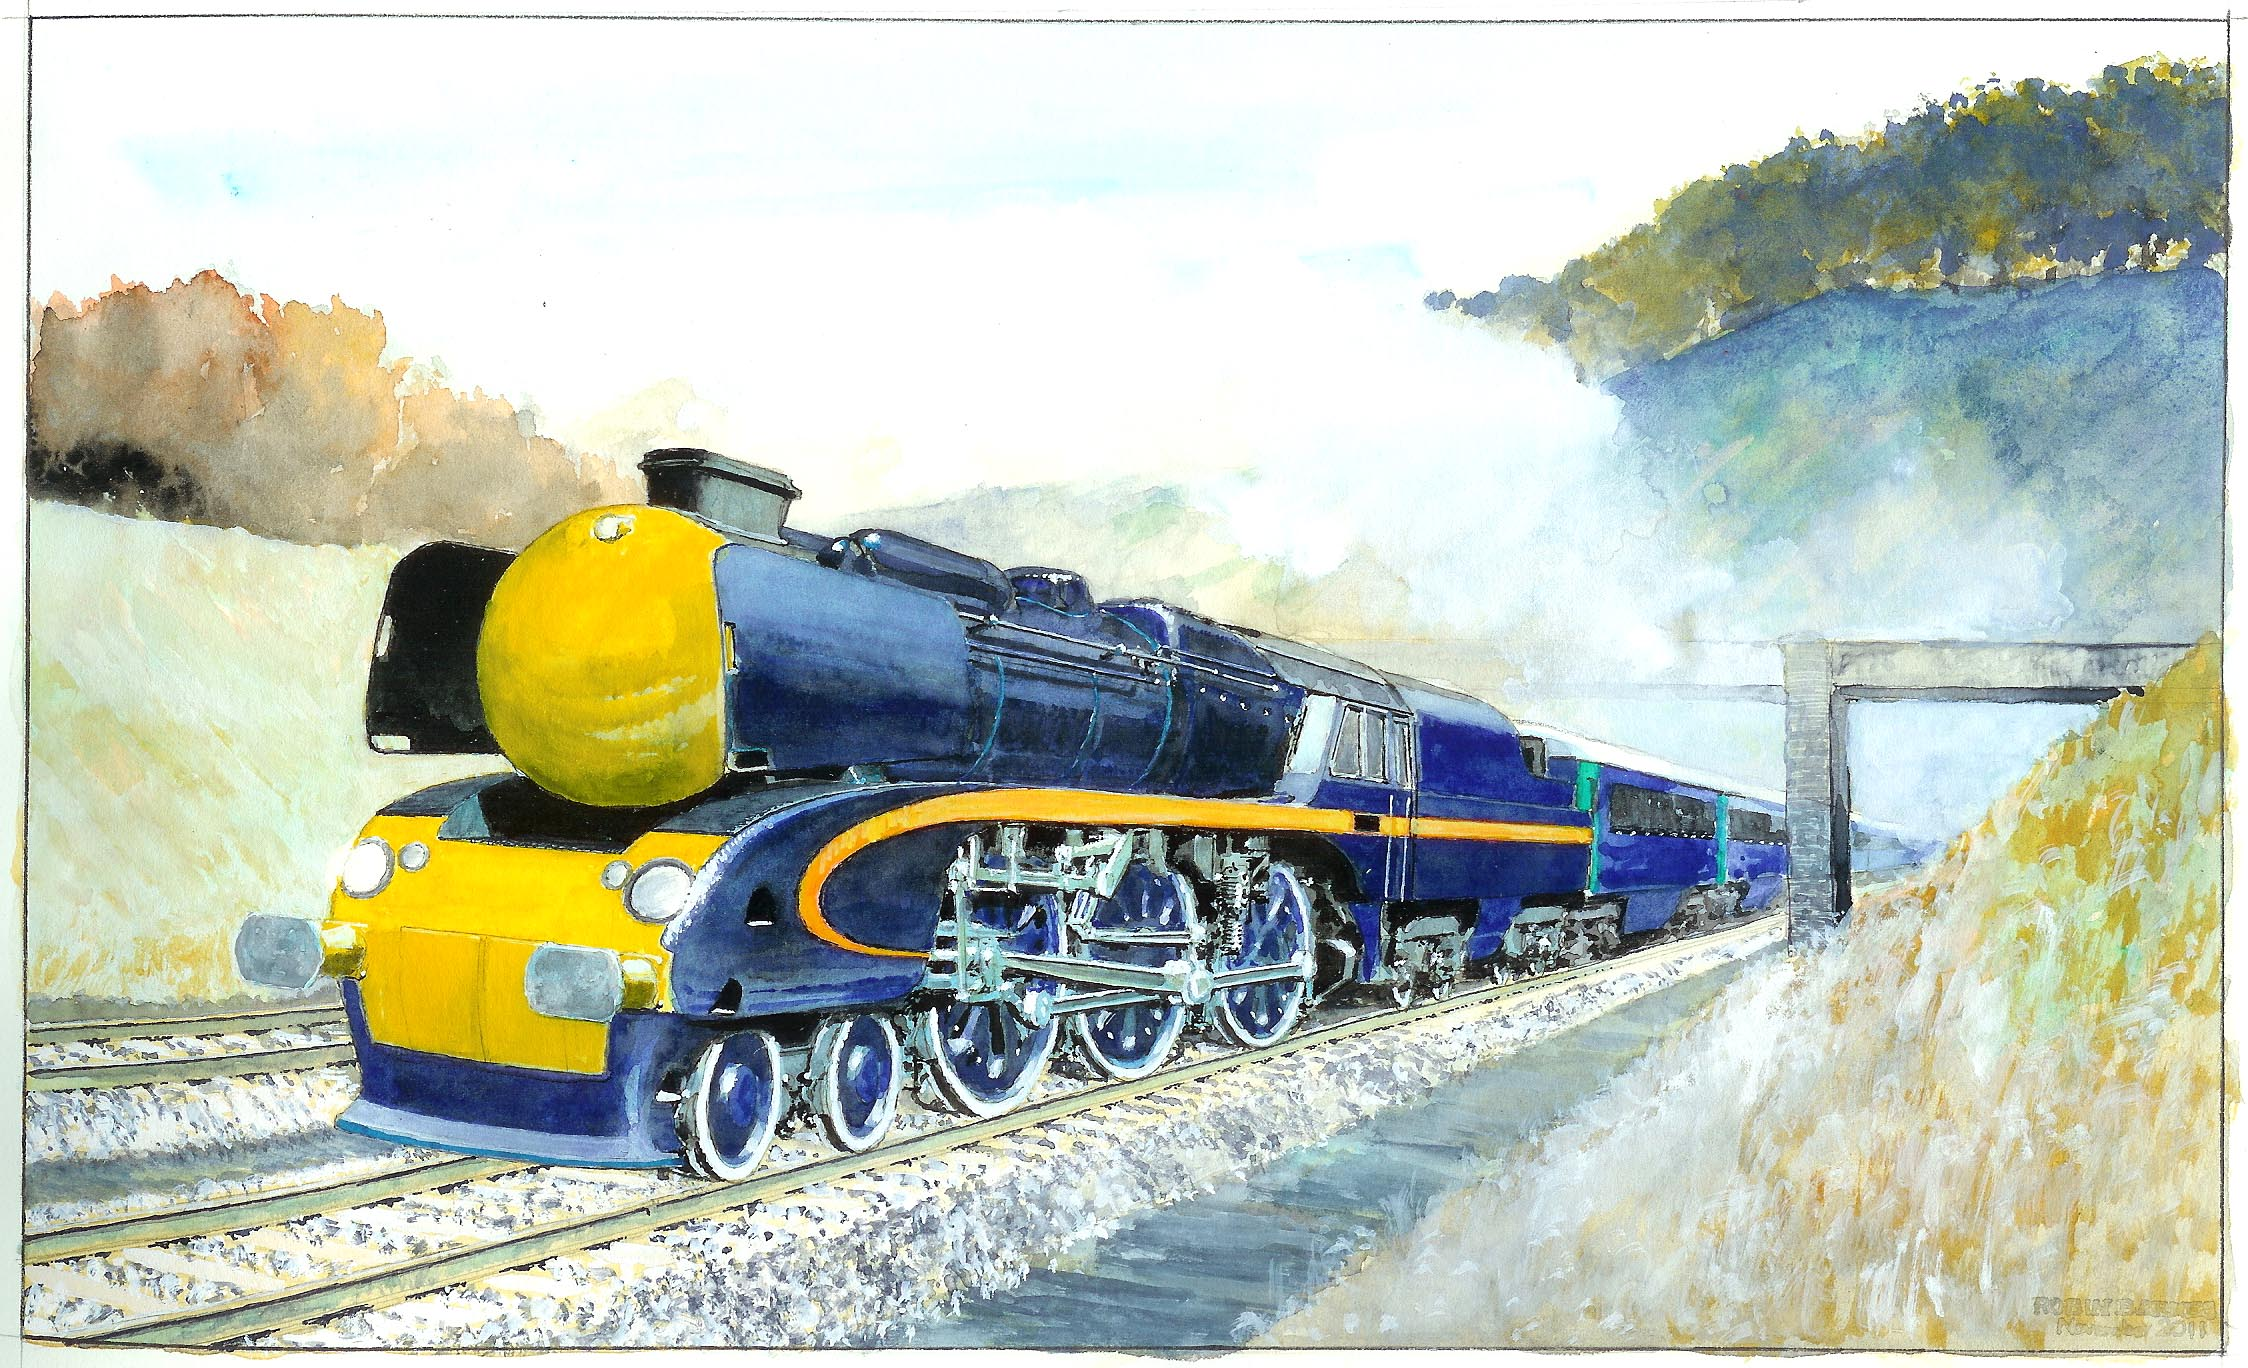 File:The 5AT locomotive illustrated in its final form (2011 painting by Robin Barnes).jpg